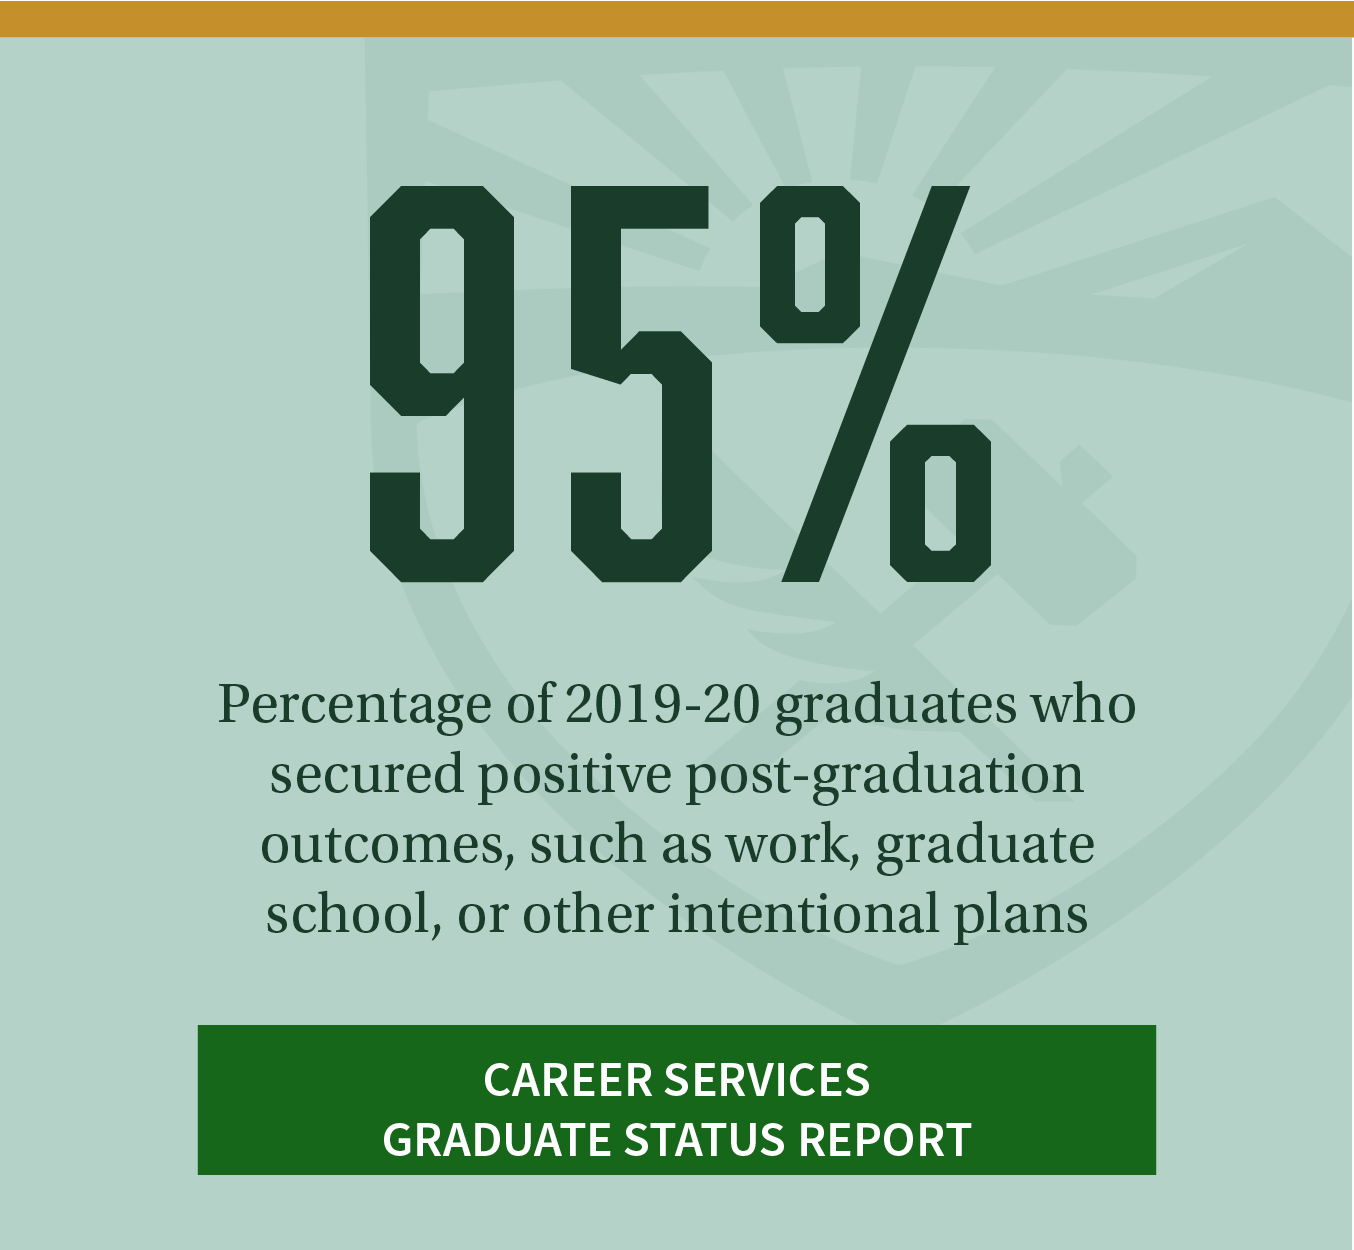 95%. Percentage of 2019-20 graduates who secured positive post-graduation outcomes, such as work, graduate school, or other intentional plans. Click to review other trends from Career Services' Graduate Status Report